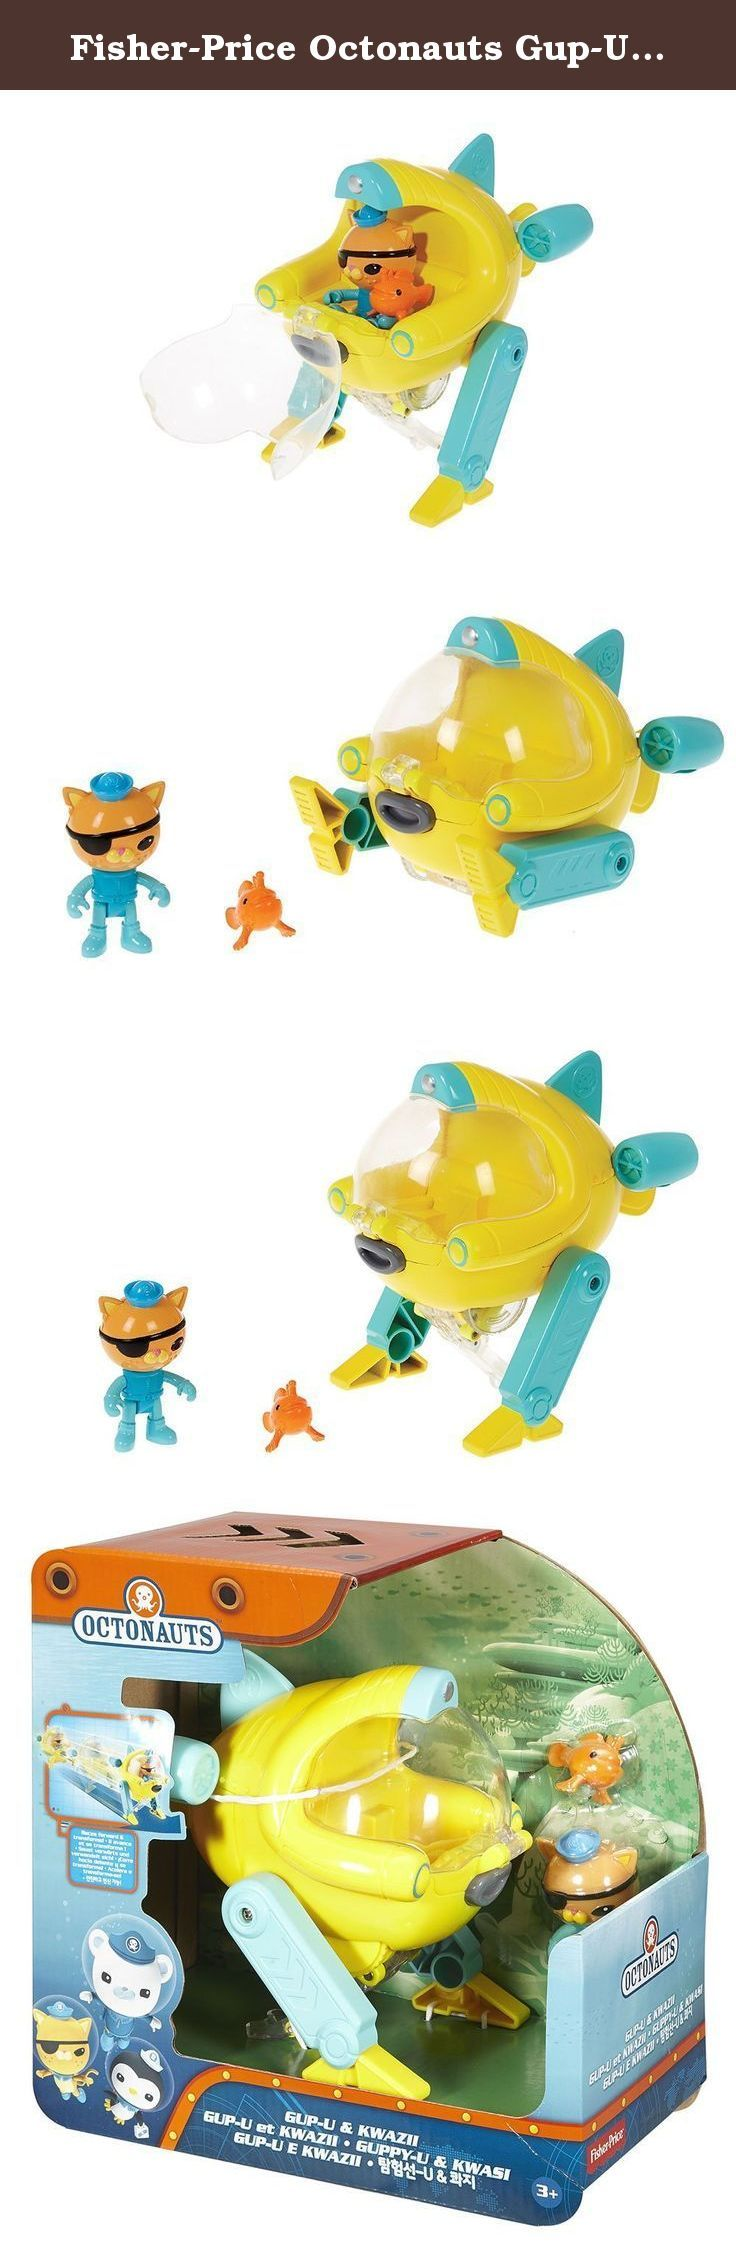 """Fisher-Price Octonauts Gup-U & Kwazii Toy. Inspired by the frogfish and featuring automatic transformation capabilities, the Octonauts' gup-u is a suitable vehicle for a variety of rescue missions. This agile Gup can quickly race forward and then automatically pop up and stand in """"patrol position"""", giving the crew a better view for scanning and spotting creatures in trouble. Just pull the Gup back and watch it go! includes kwazii, the gup-u and a frogfish to rescue. On the television show..."""